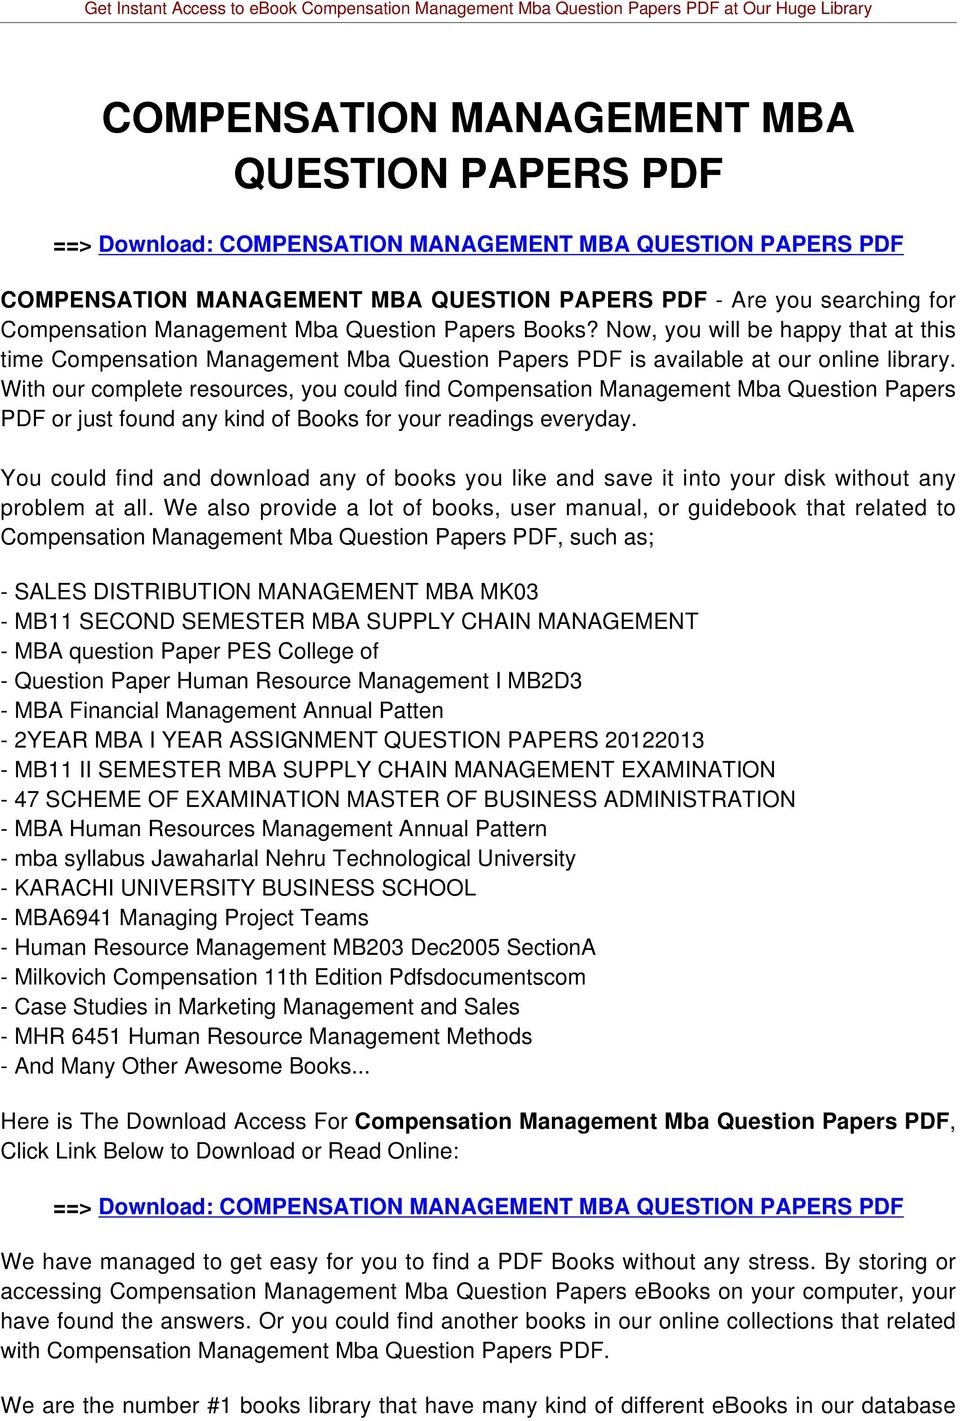 With our complete resources, you could find Compensation Management Mba Question Papers PDF or just found any kind of Books for your readings everyday.